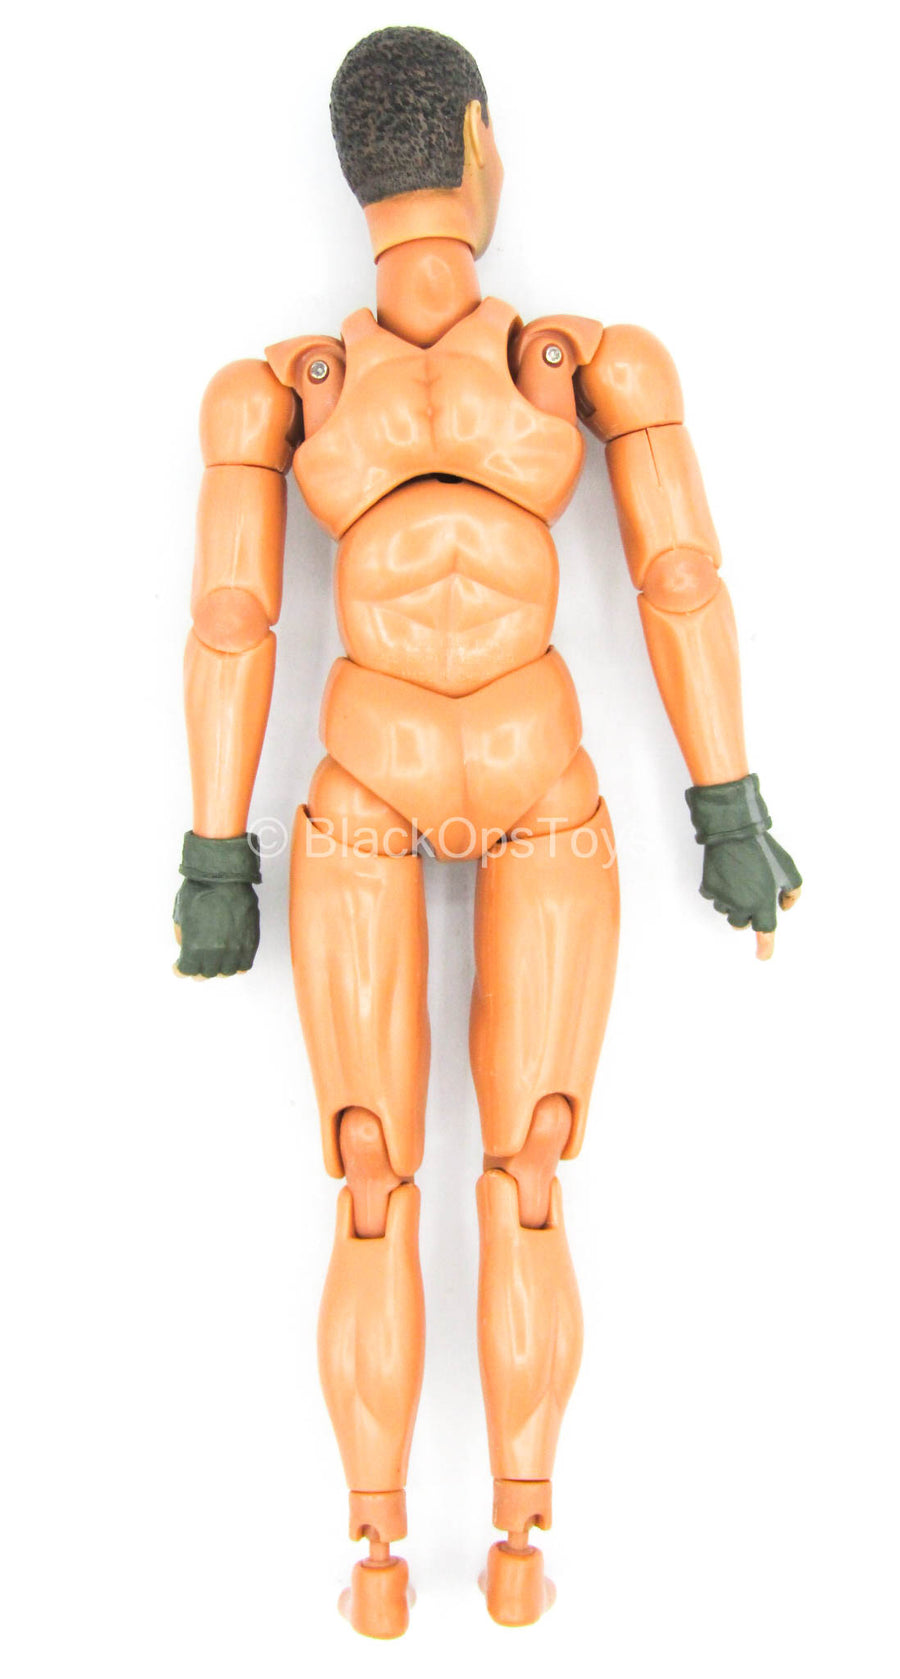 U.S. Army - Spec Ops - Male Base Body w/Head Sculpt Type 2